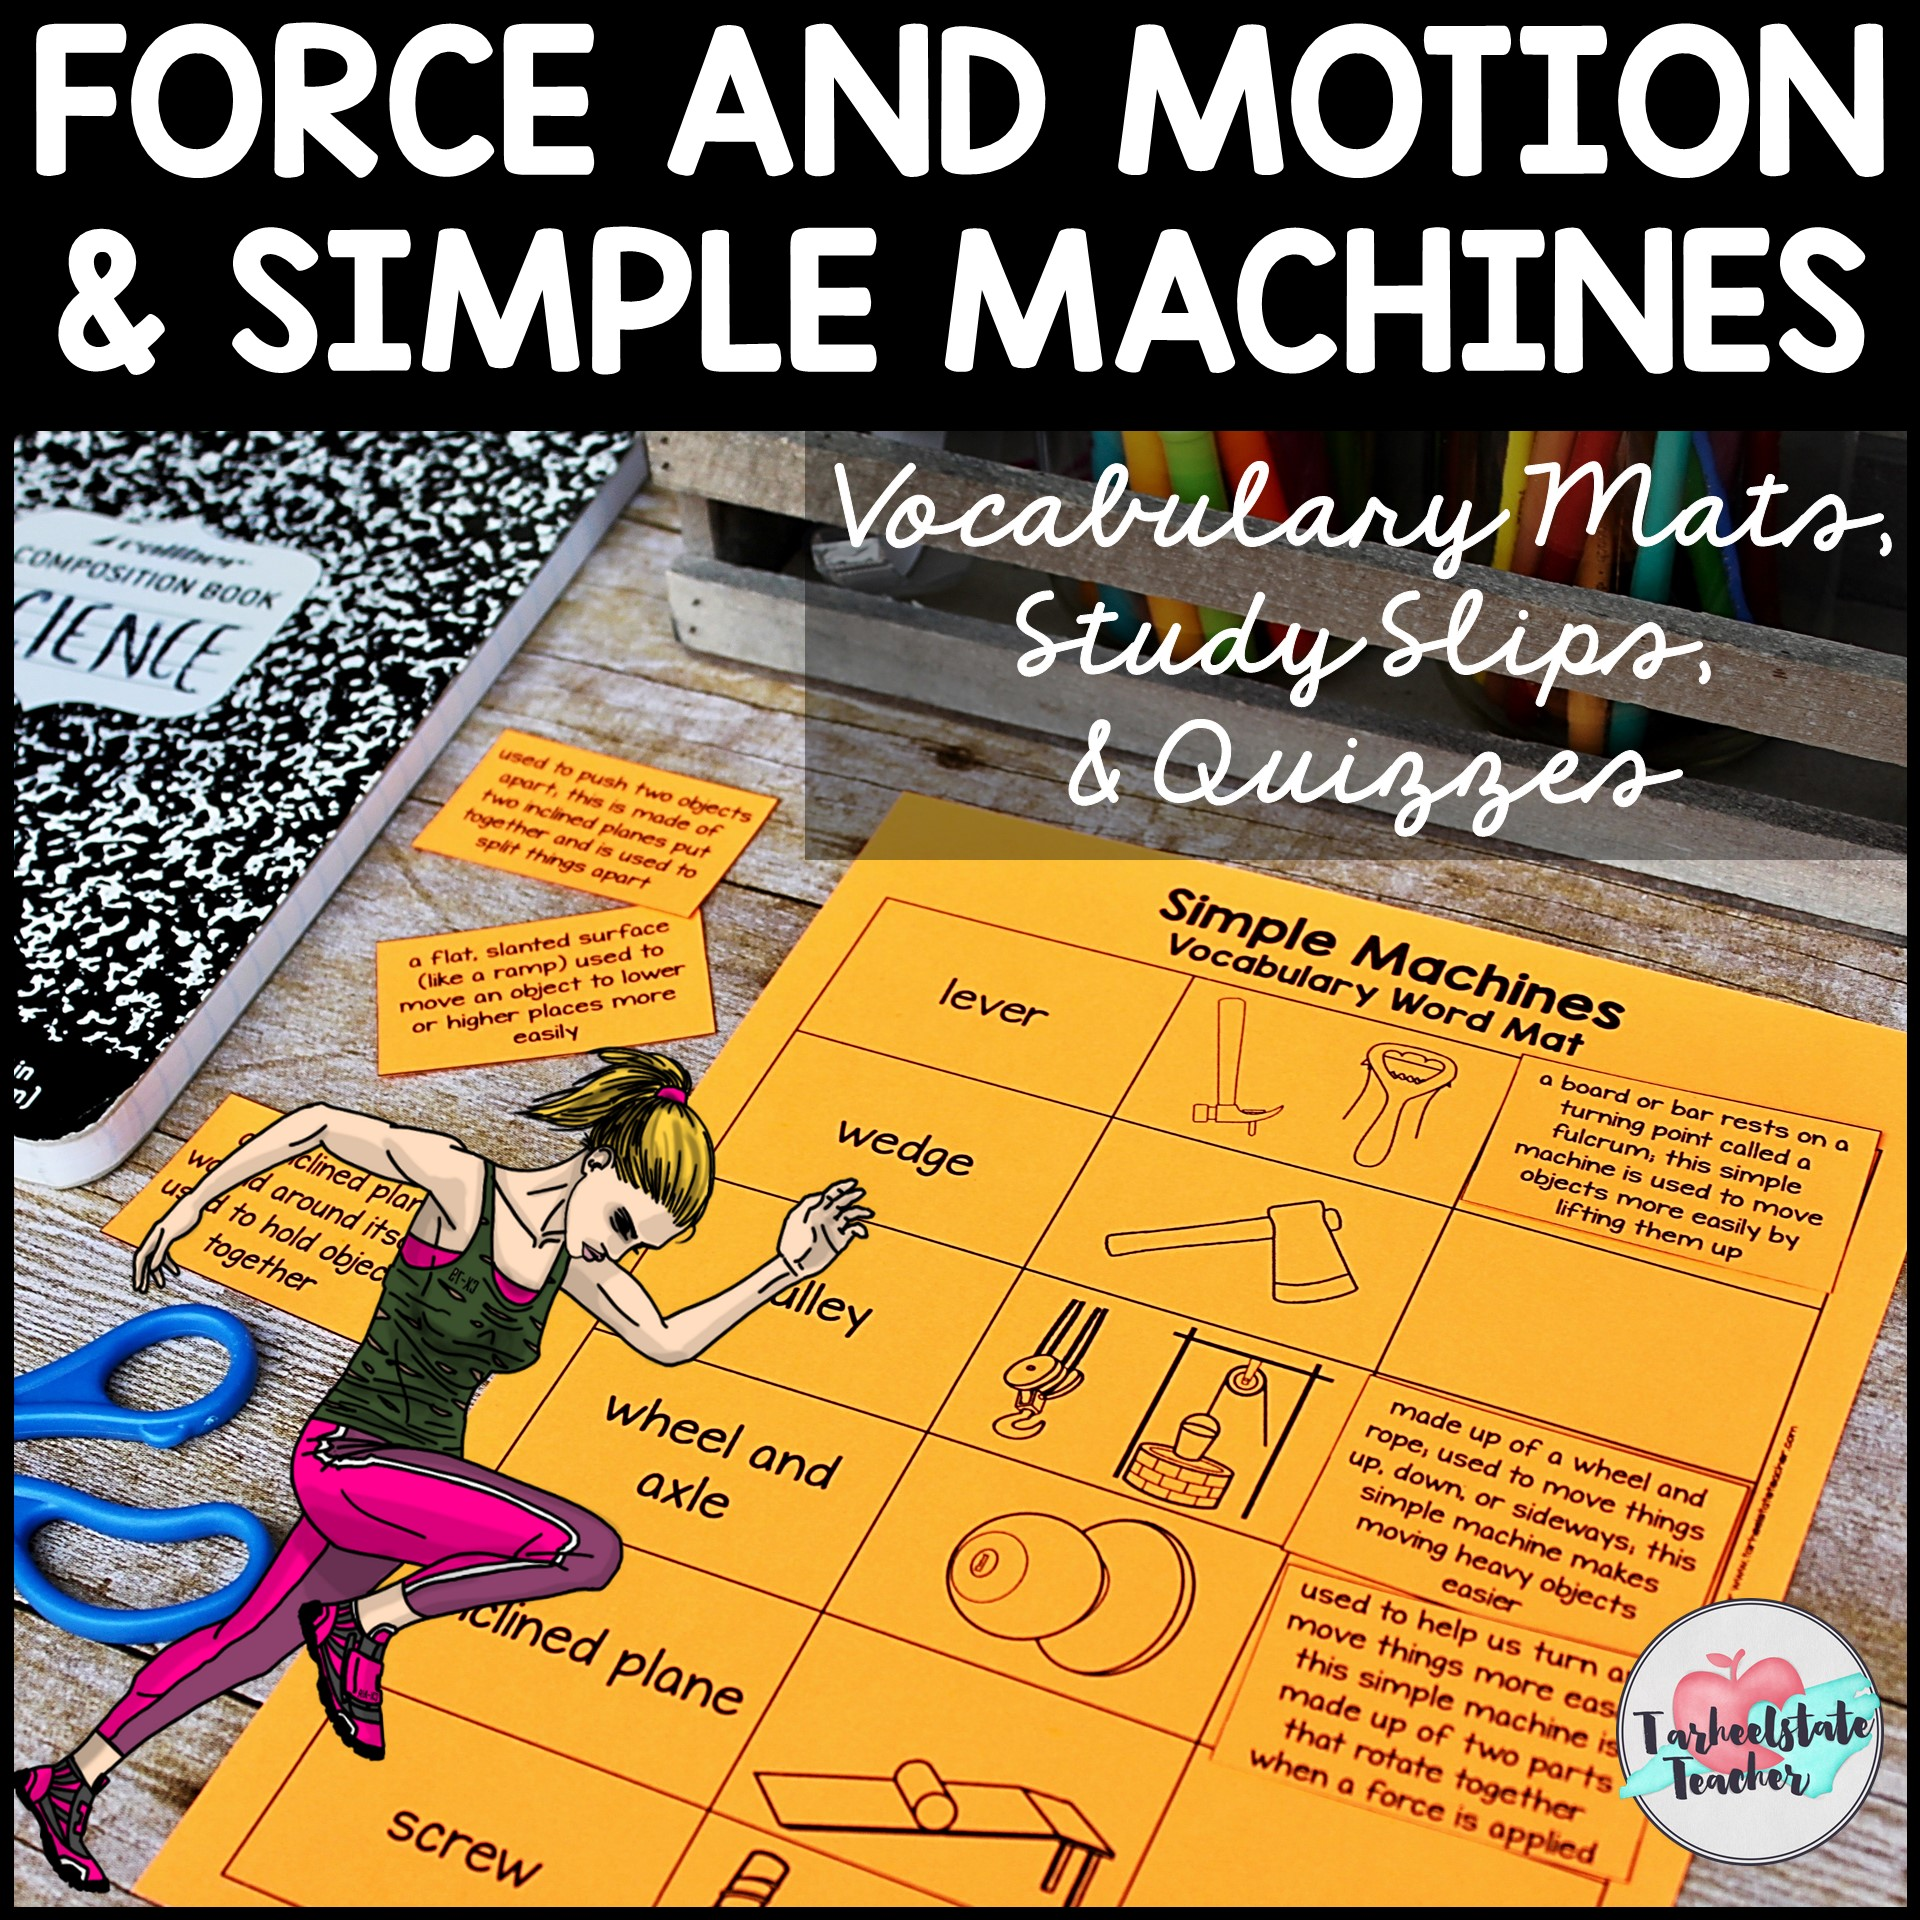 force and motion simple machines vocabulary.JPG